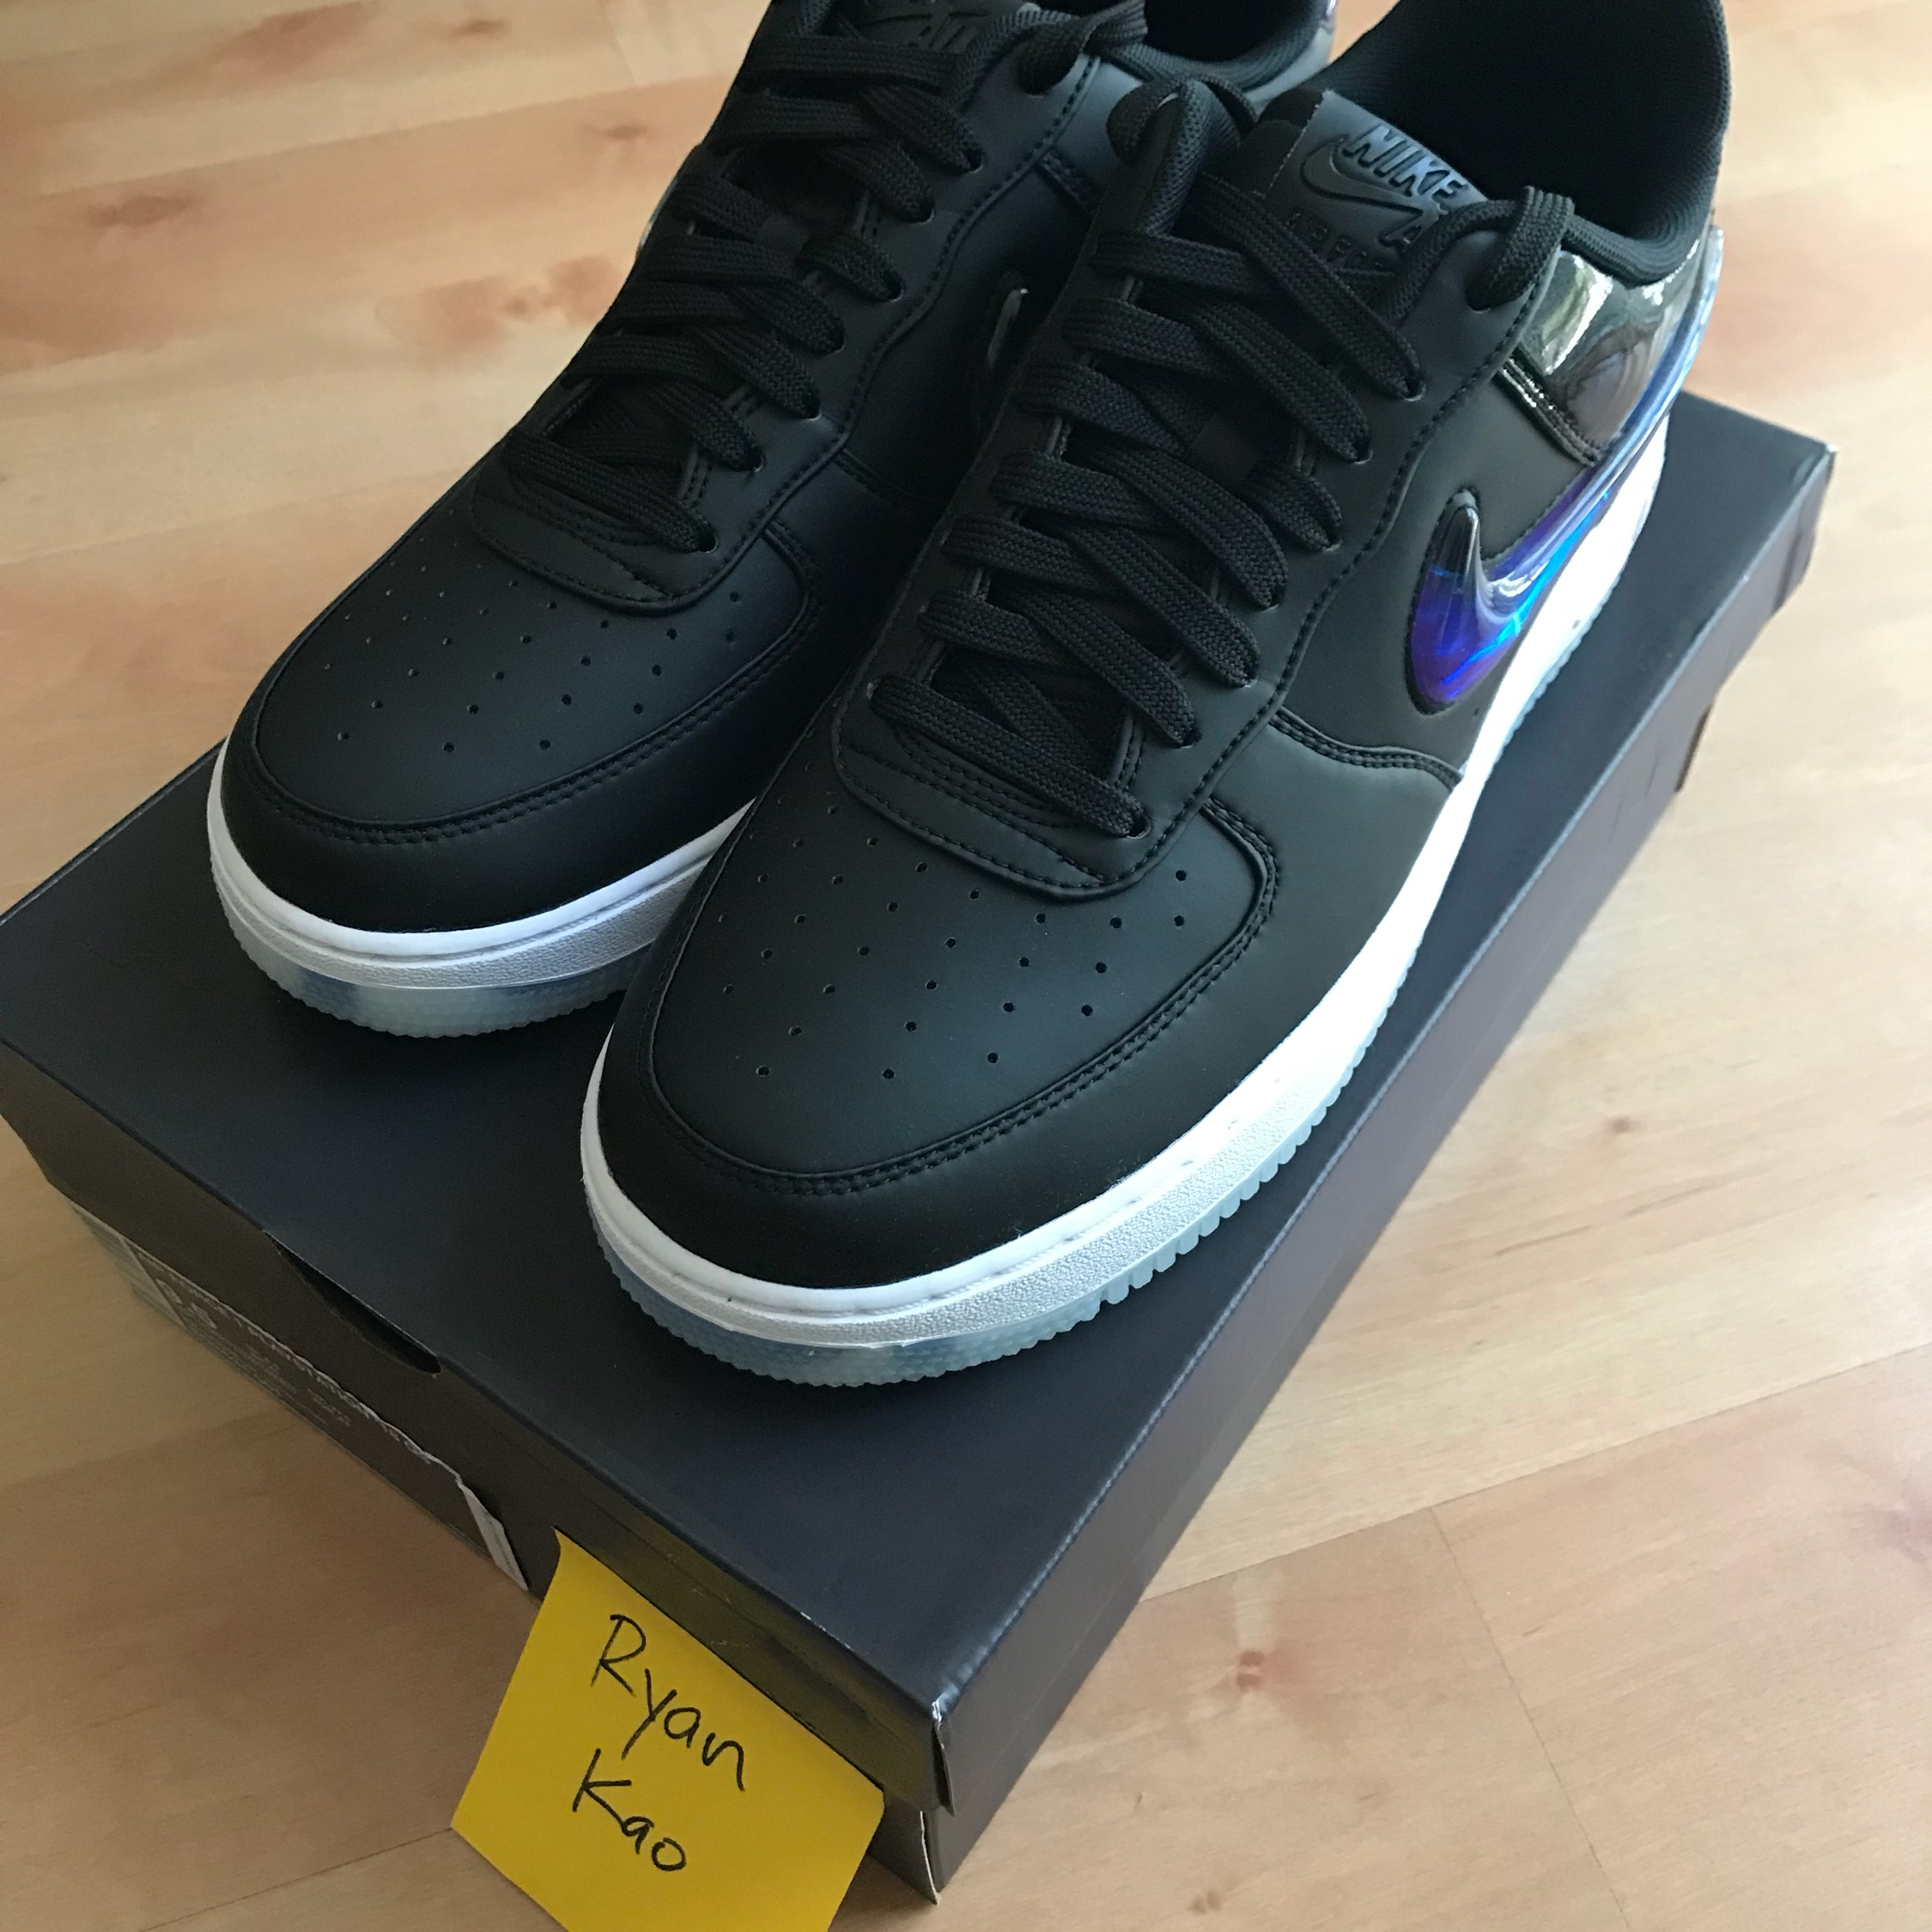 Playstation X Nike Air Force 1 Qs E3 Exclusive